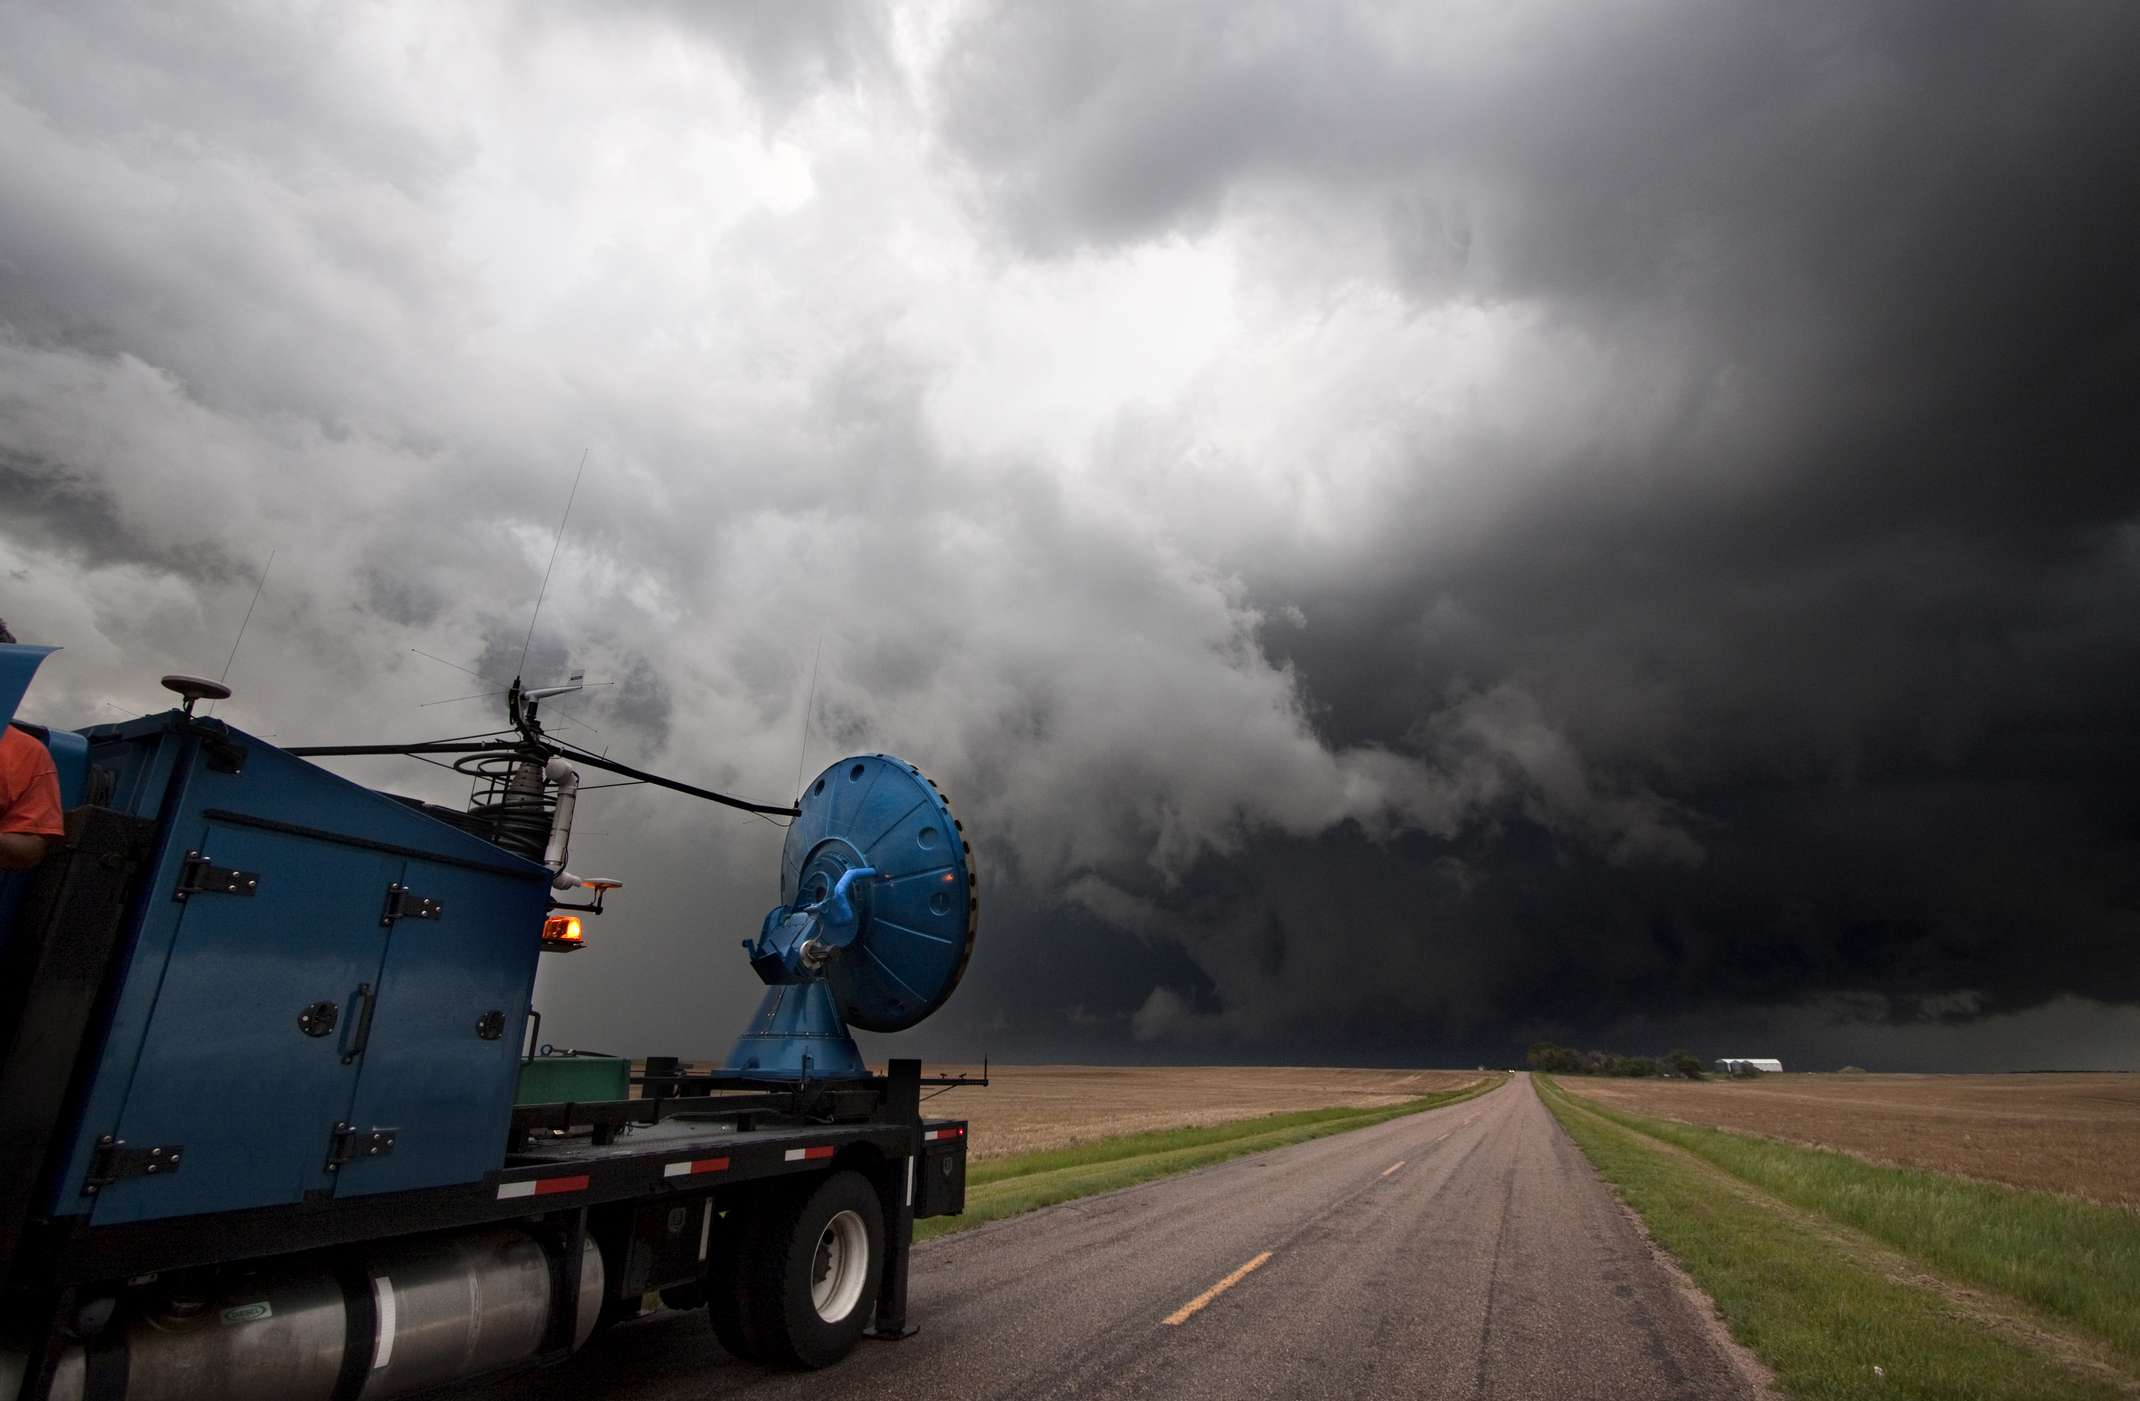 A mobile Doppler radar truck participating in Project Vortex 2 scans a previously tornadic storm in western Nebraska